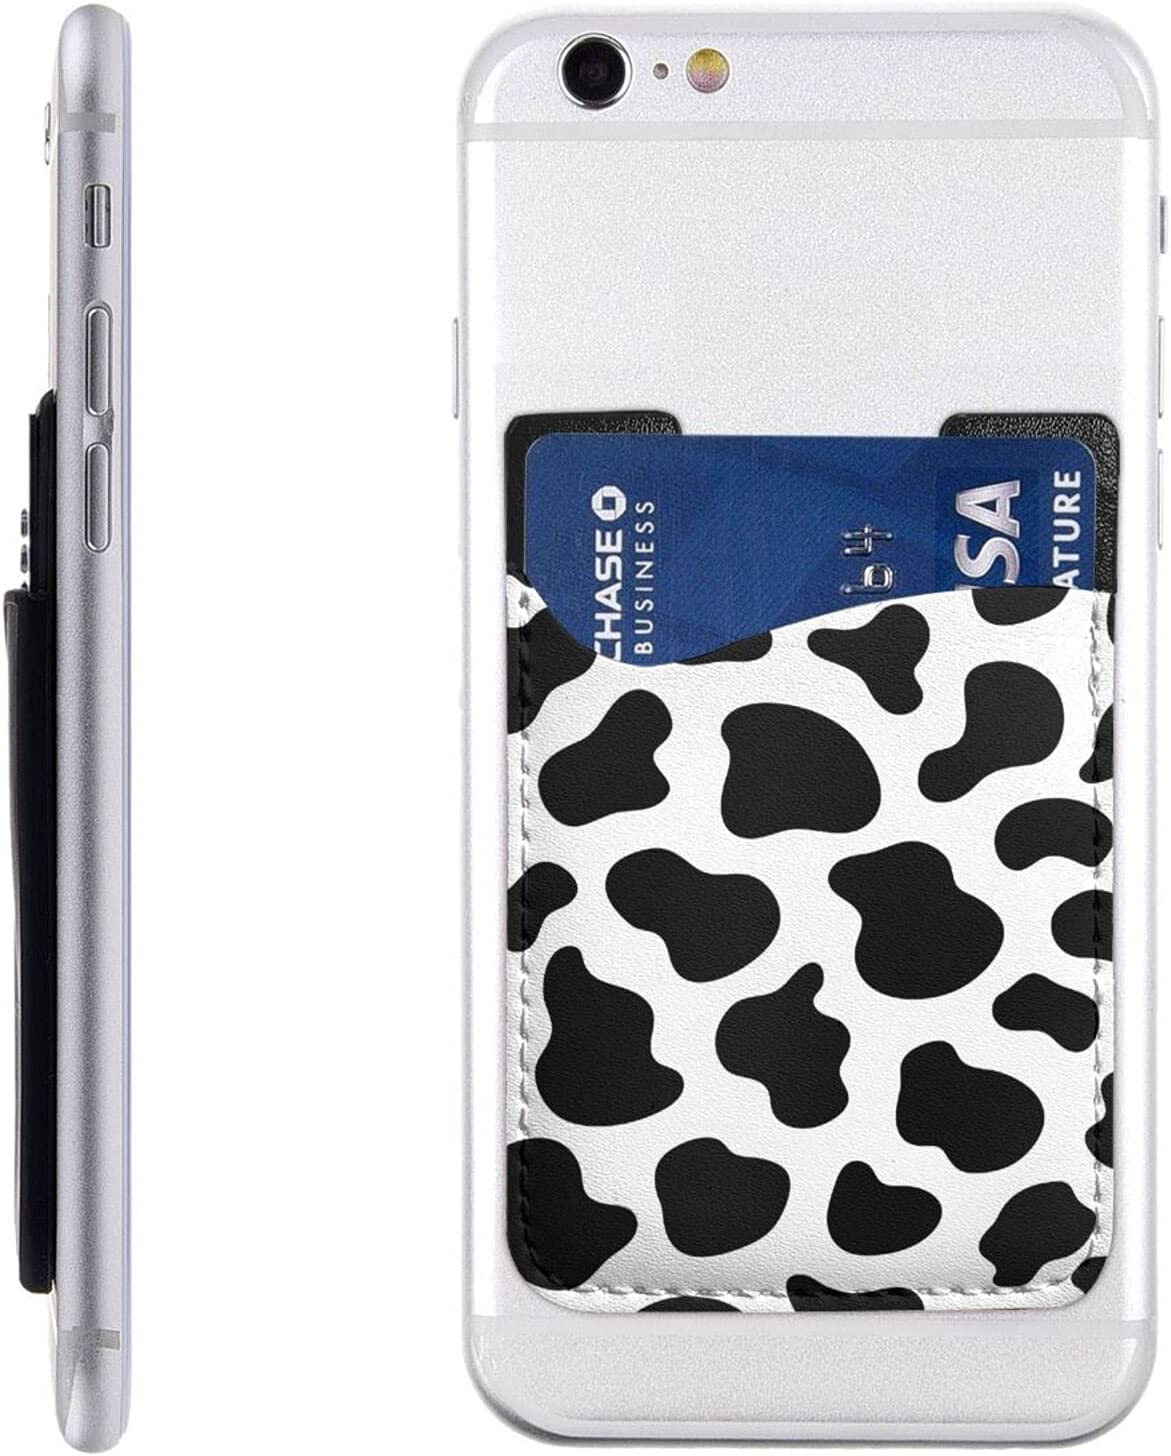 Cow Print Phone Card Holder Max 70% OFF Credit Cas Back Cell Stick Wallet Sale special price On